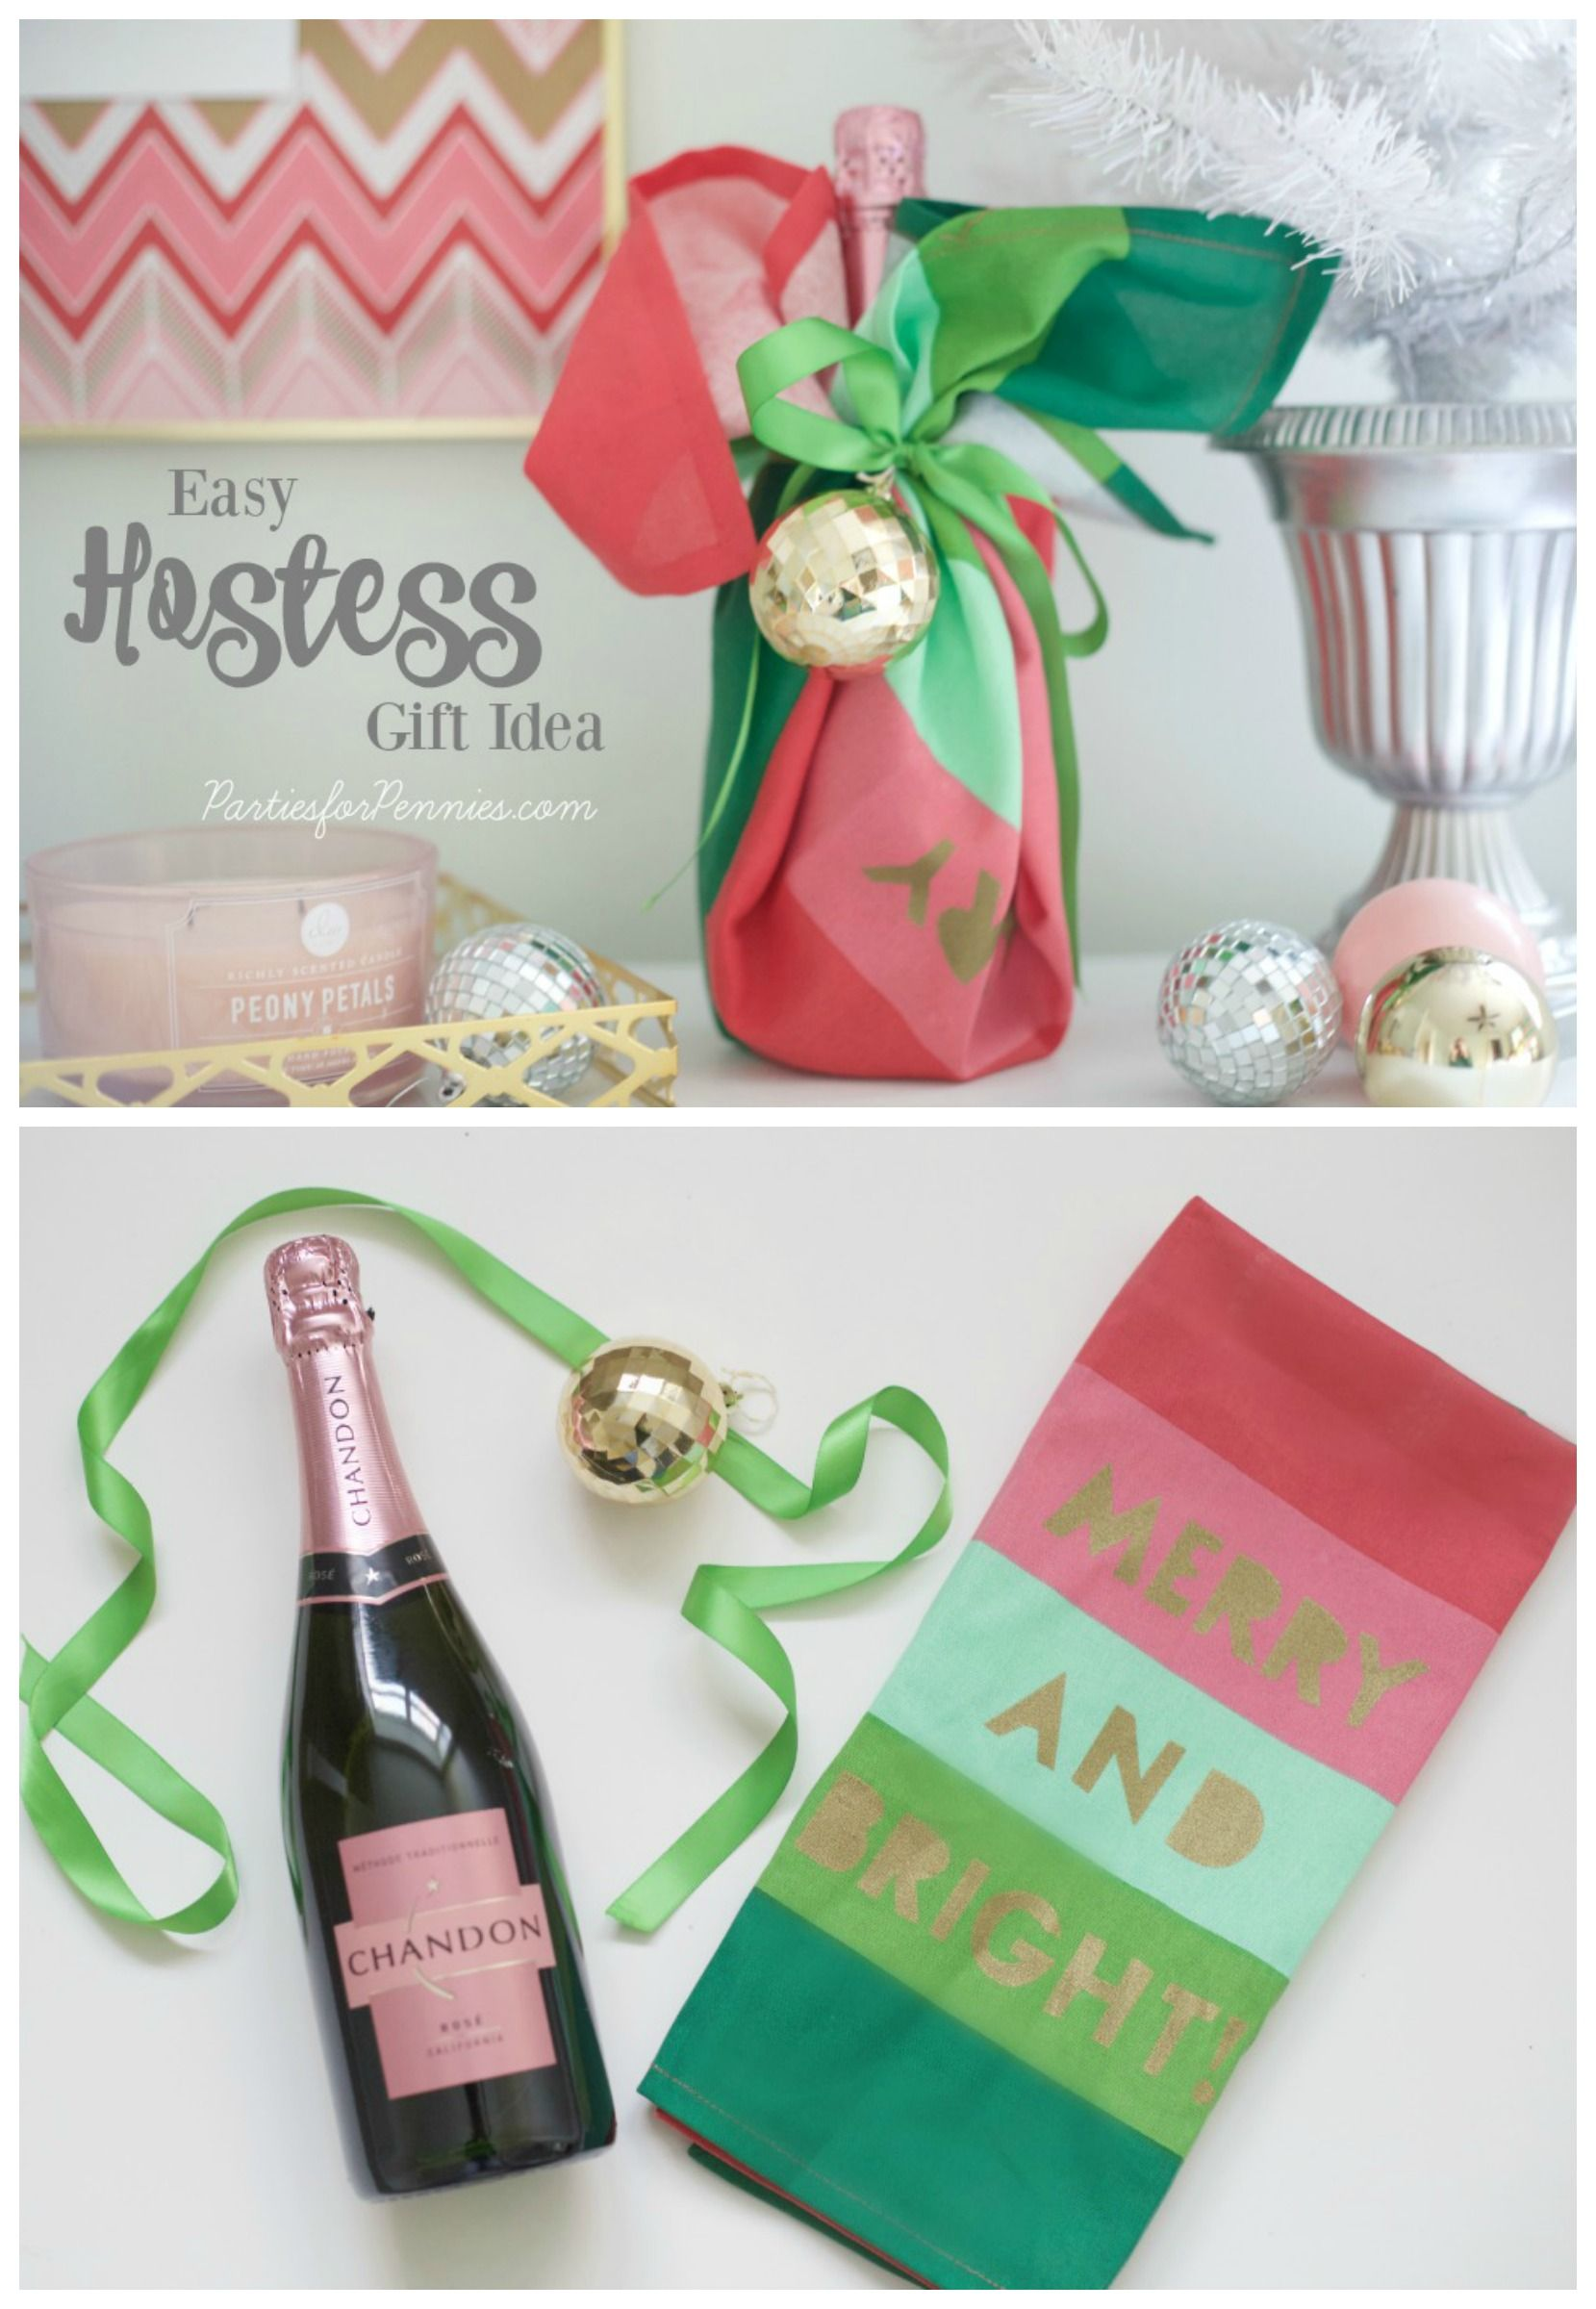 Easy Hostess Gift Idea for the Holidays by PartiesforPennies.com ...